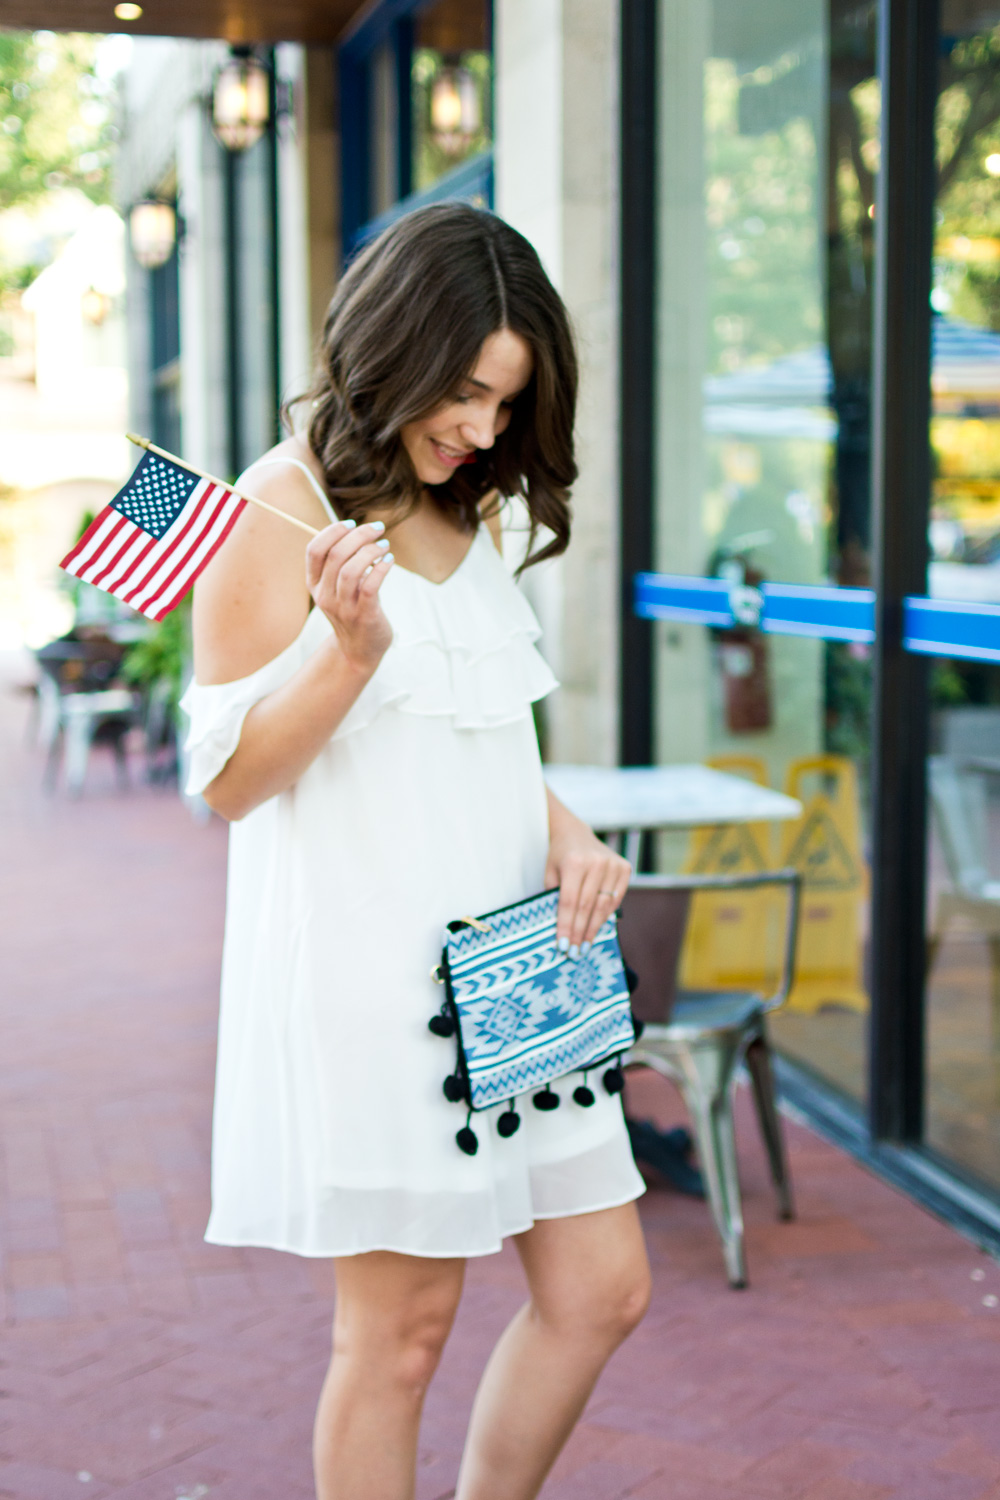 White cold shoulder sundress styled for the 4th of July